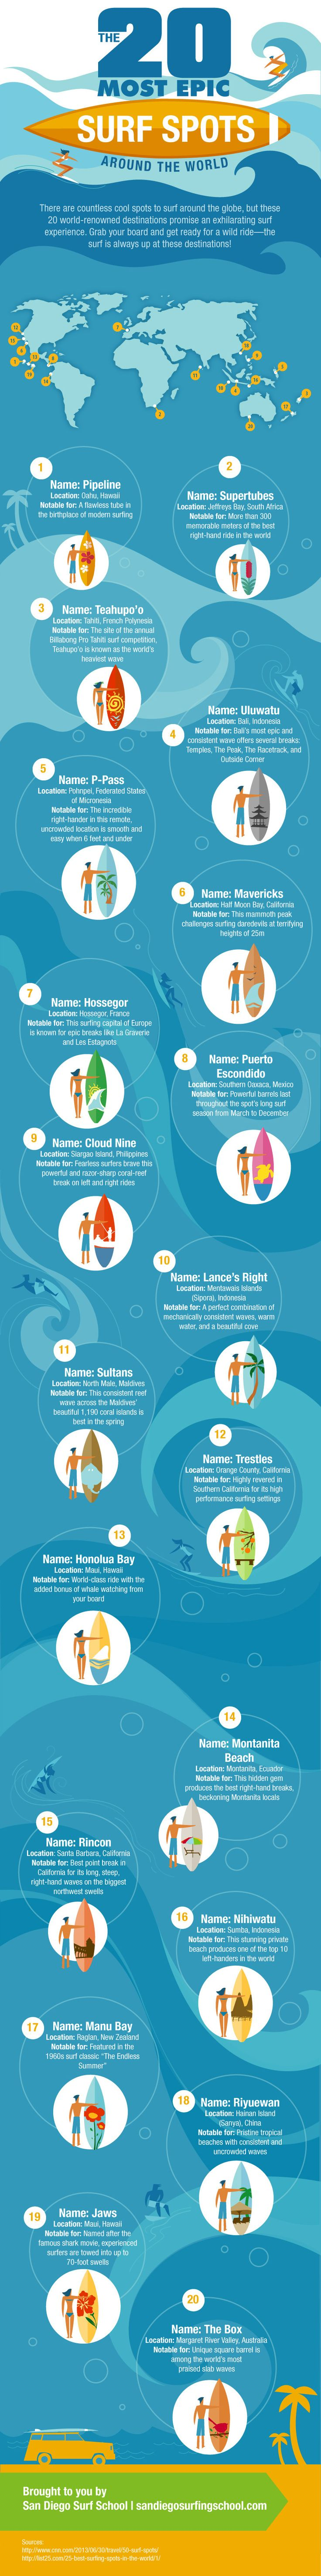 Des envies de surf ? Une liste de 20 spots de surf dans le monde. (Sorry it's in english:)